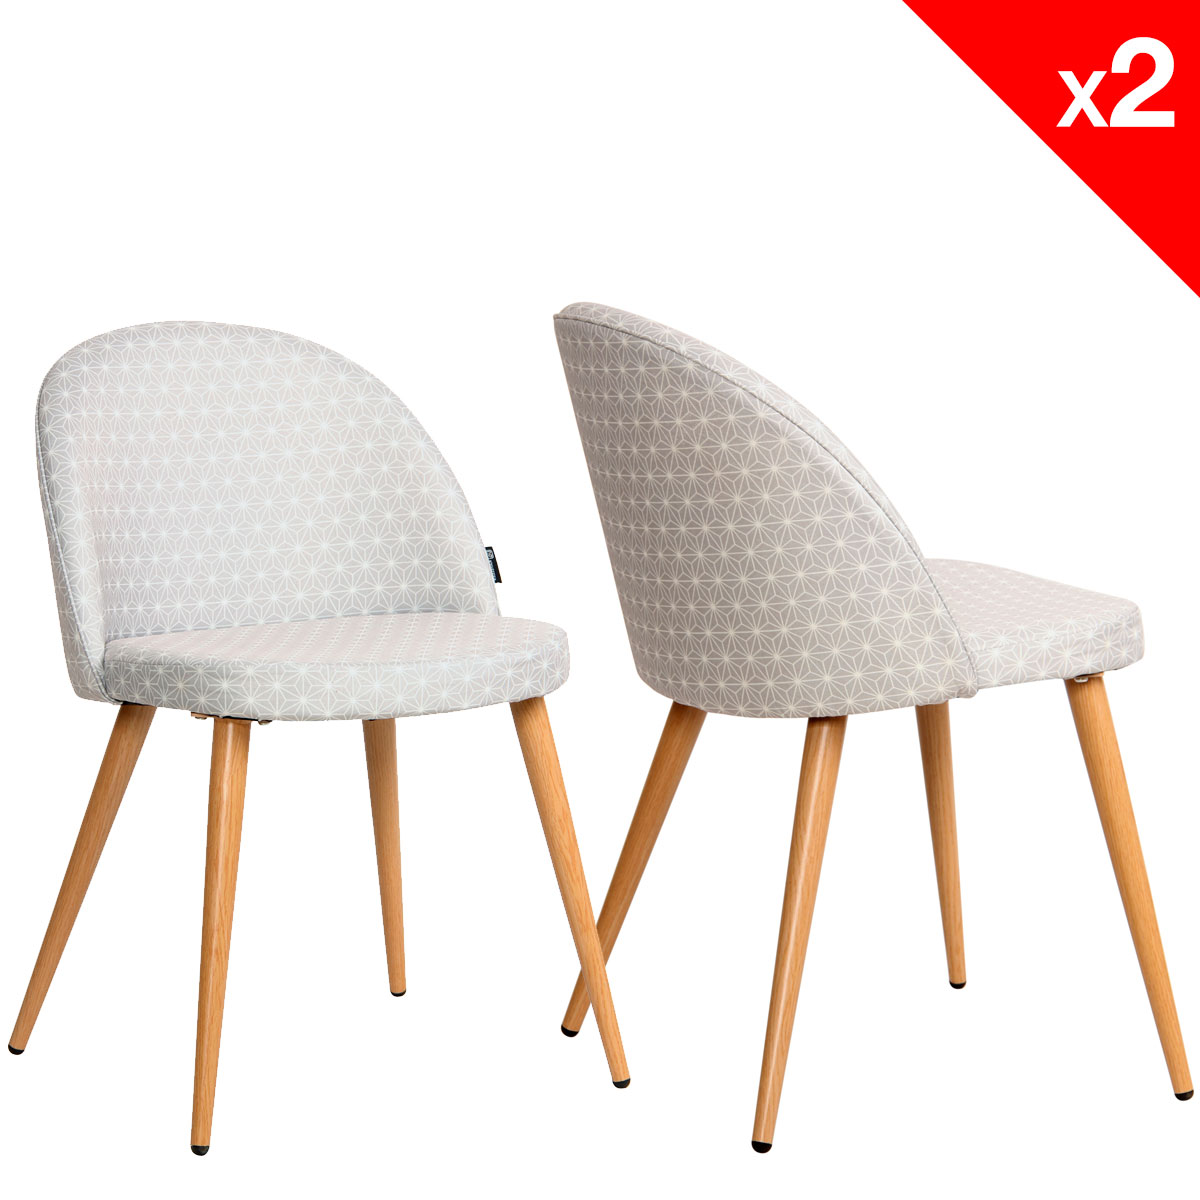 Chaise scandinave vintage tissu toiles lot de 2 giza for Cocktail scandinave chaises